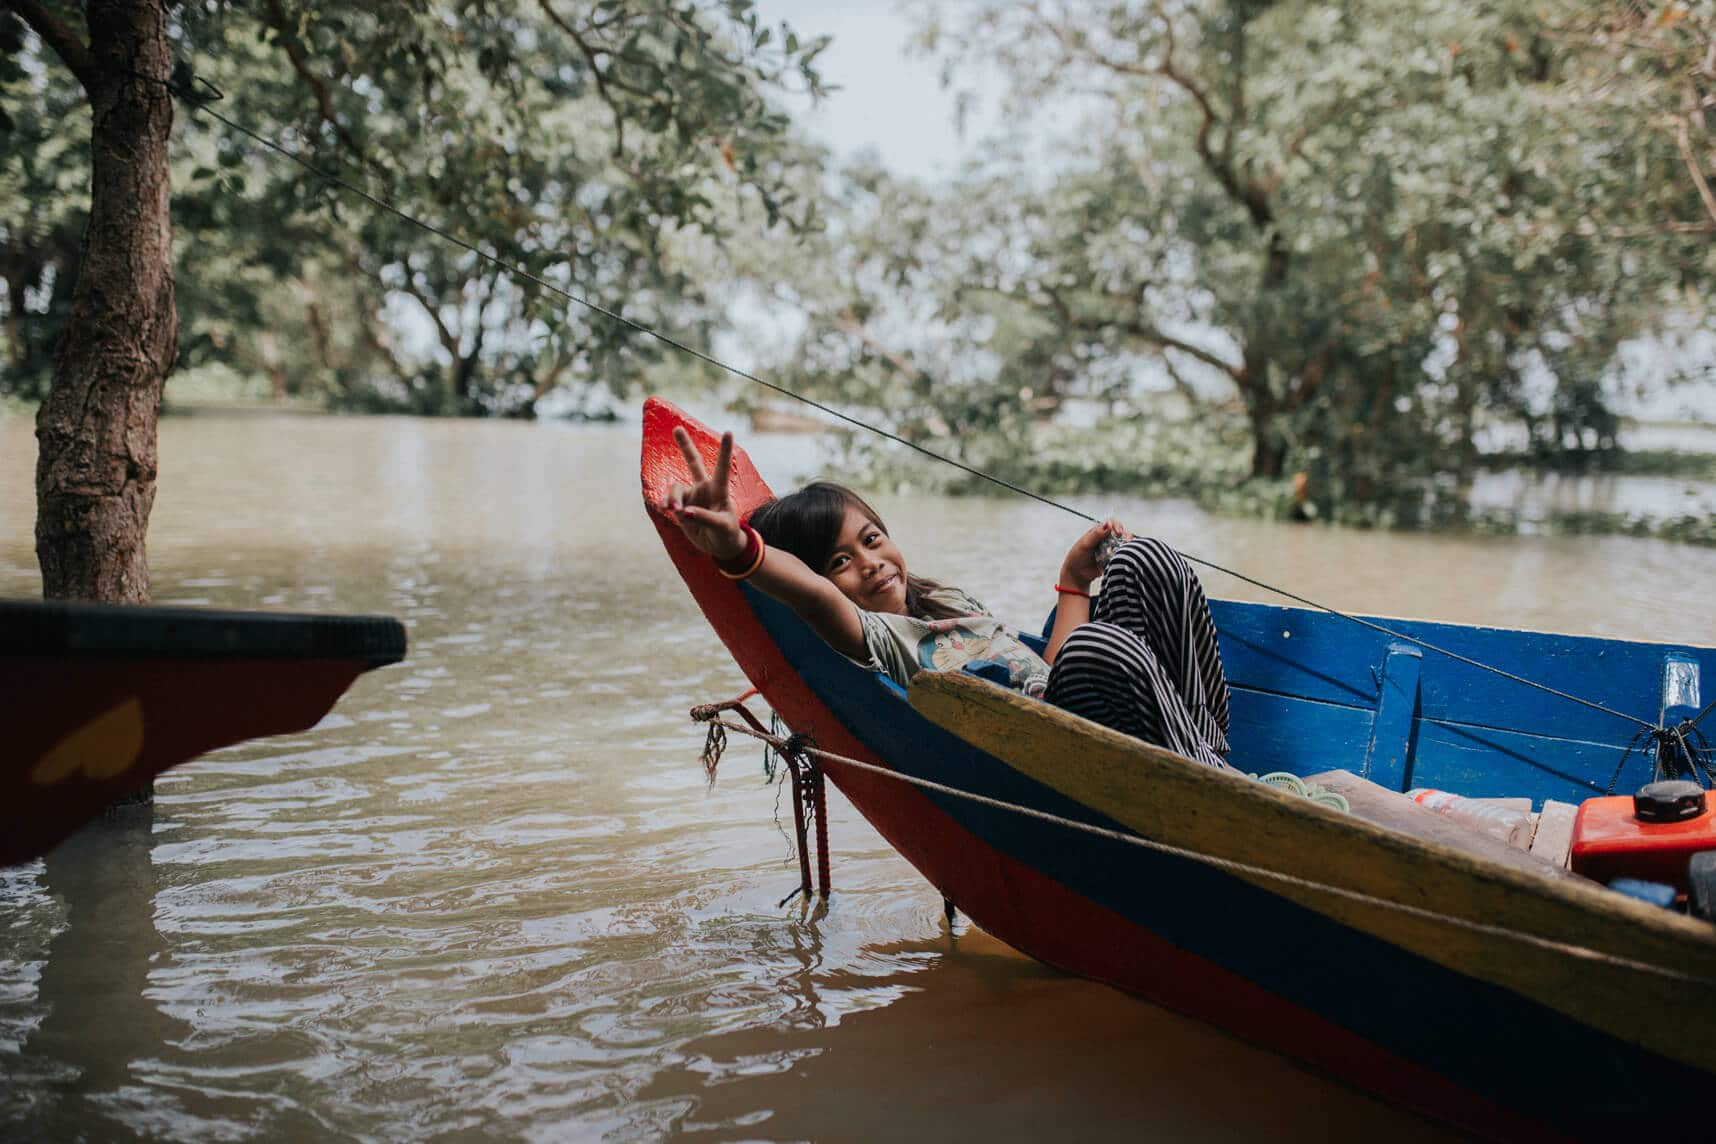 Cambodia photography - Kompong Pluk's flooded forest - Girl in canoe